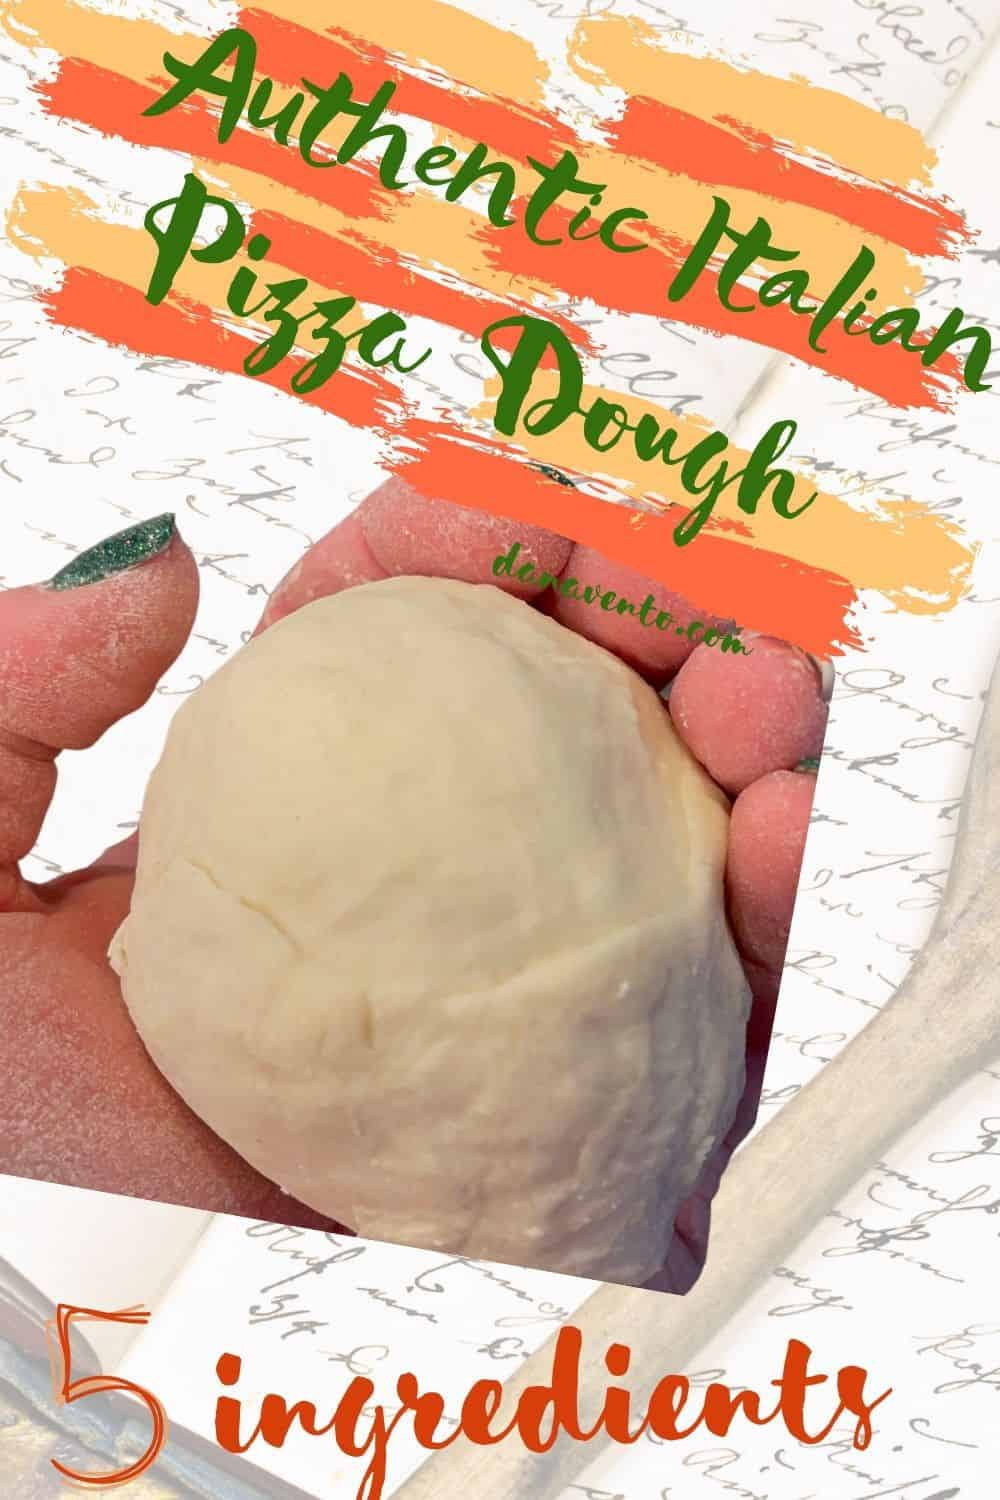 Dough in my hand authentic Italian Pizza Dough 5 ingredients cookbook behind